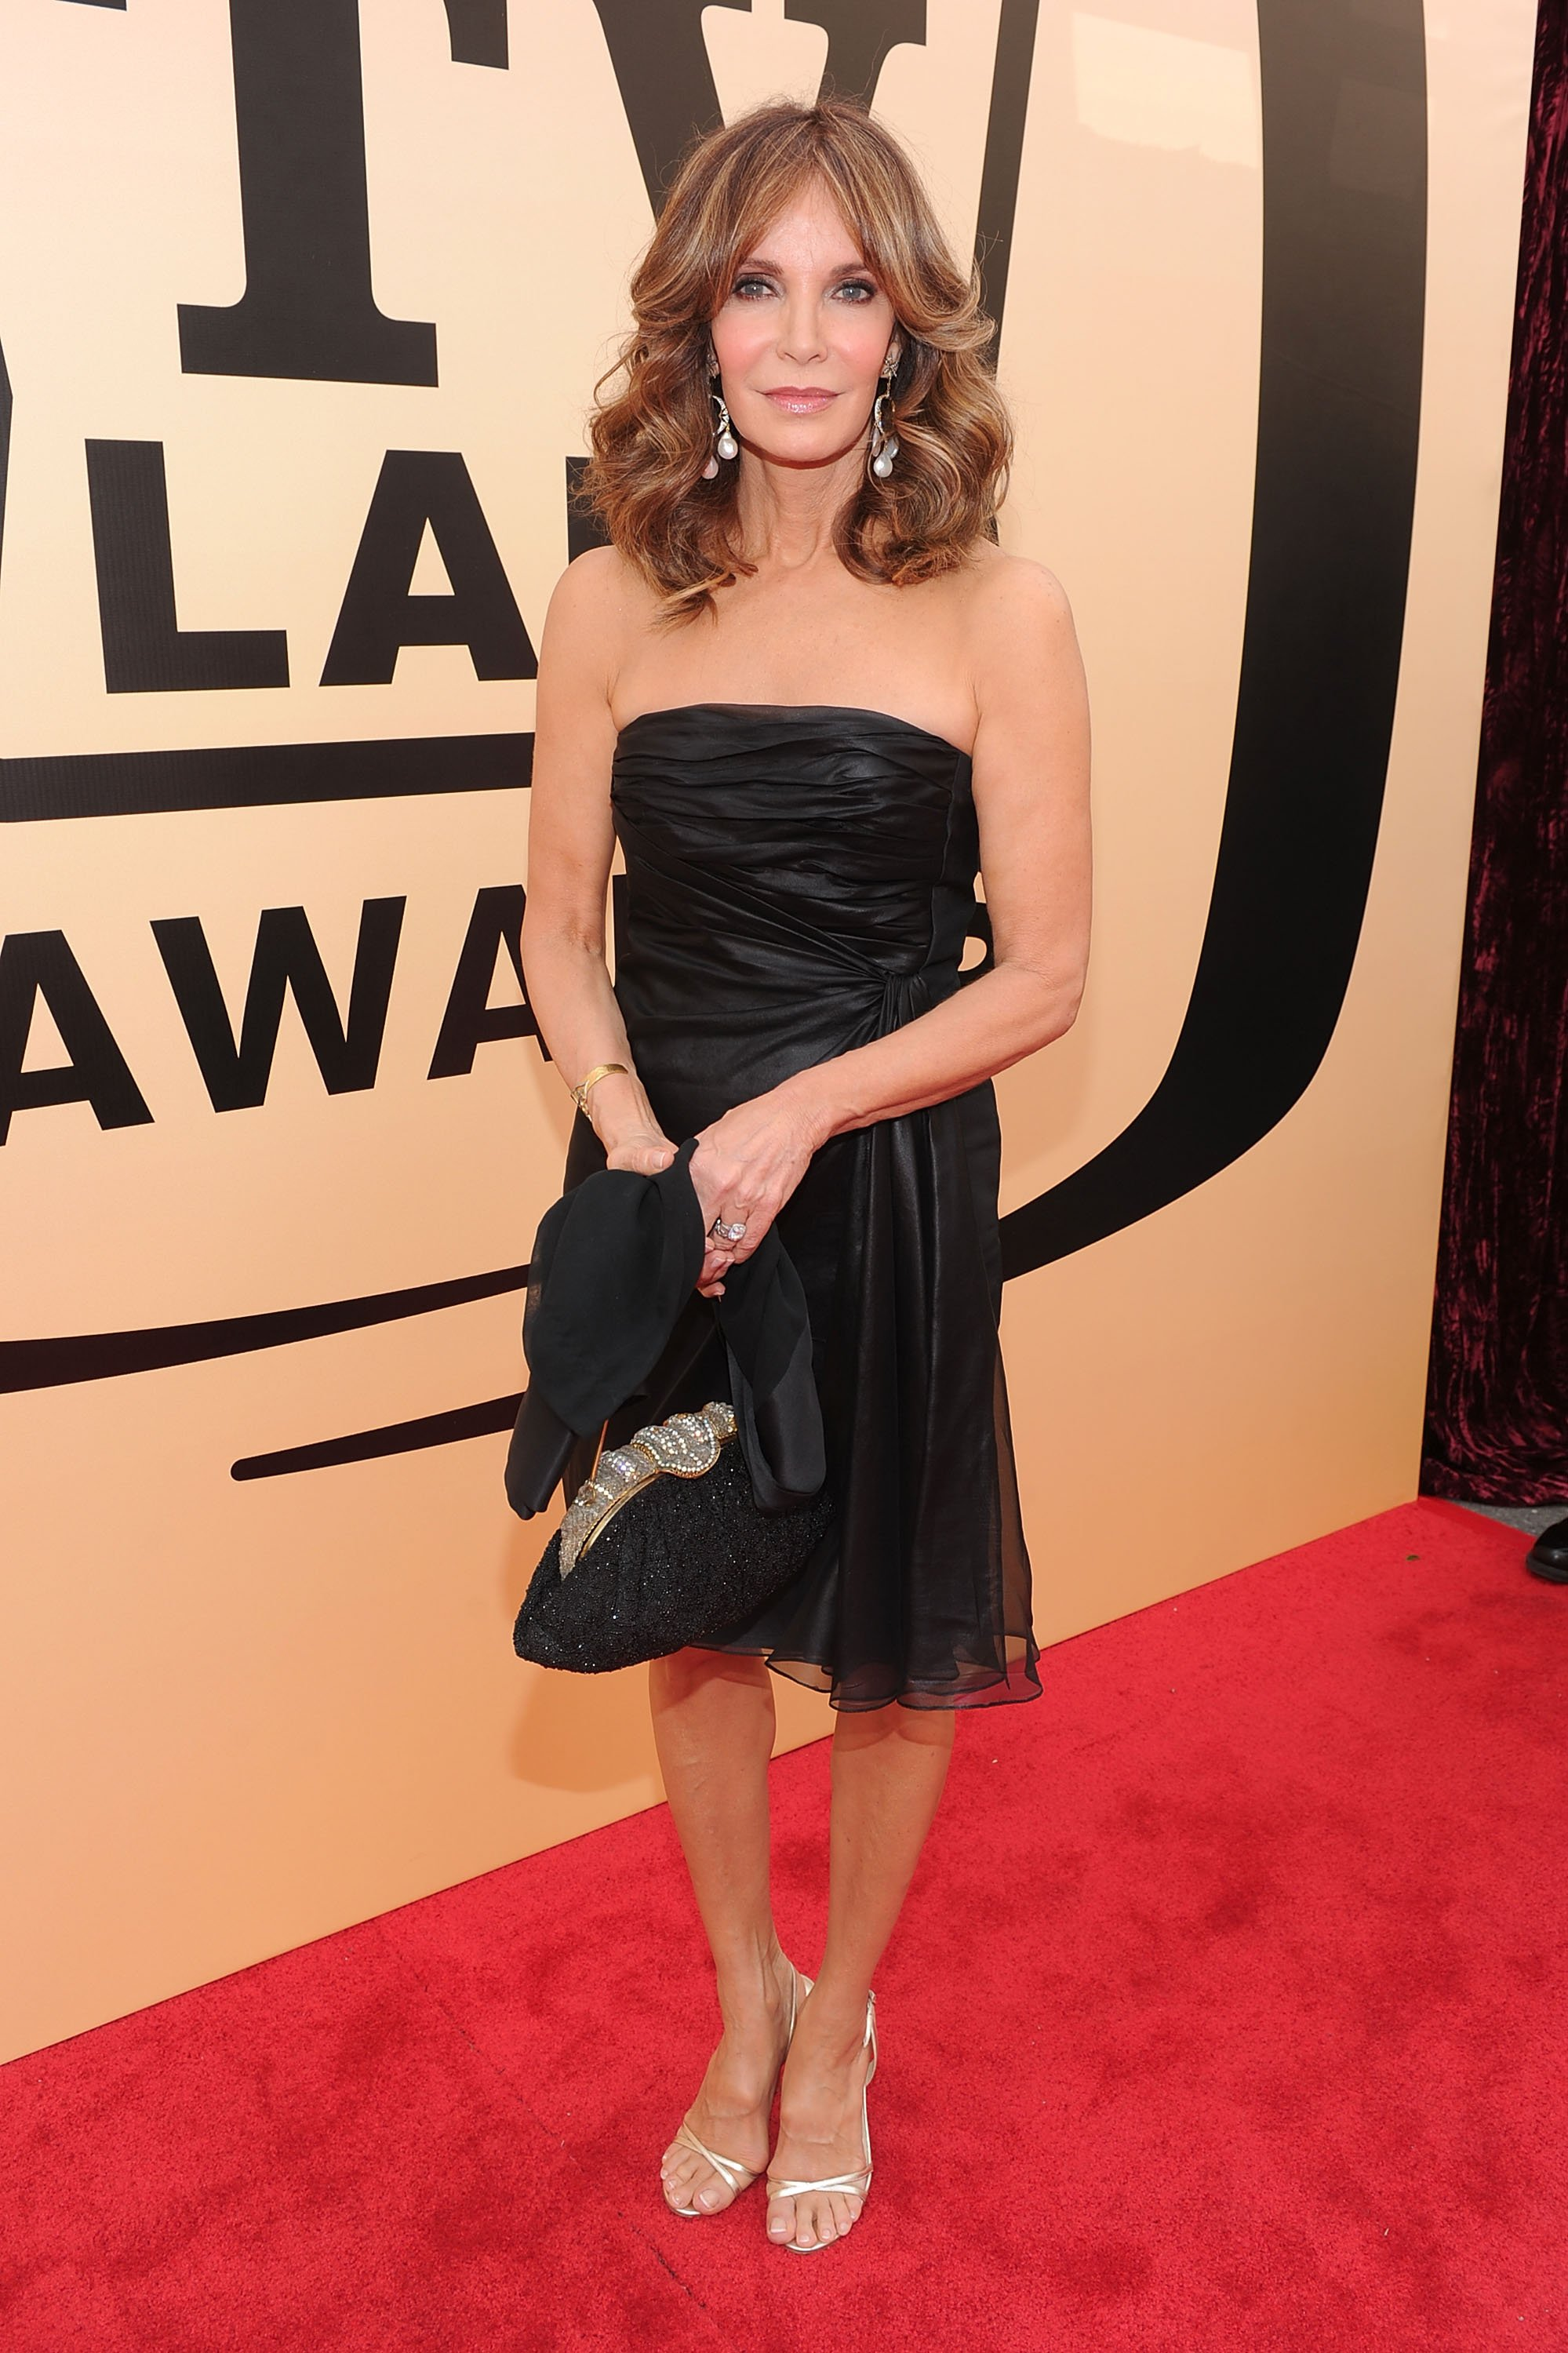 Jaclyn Smith arrives at the 8th Annual TV Land Awards in 2010. | Photo: Getty Images